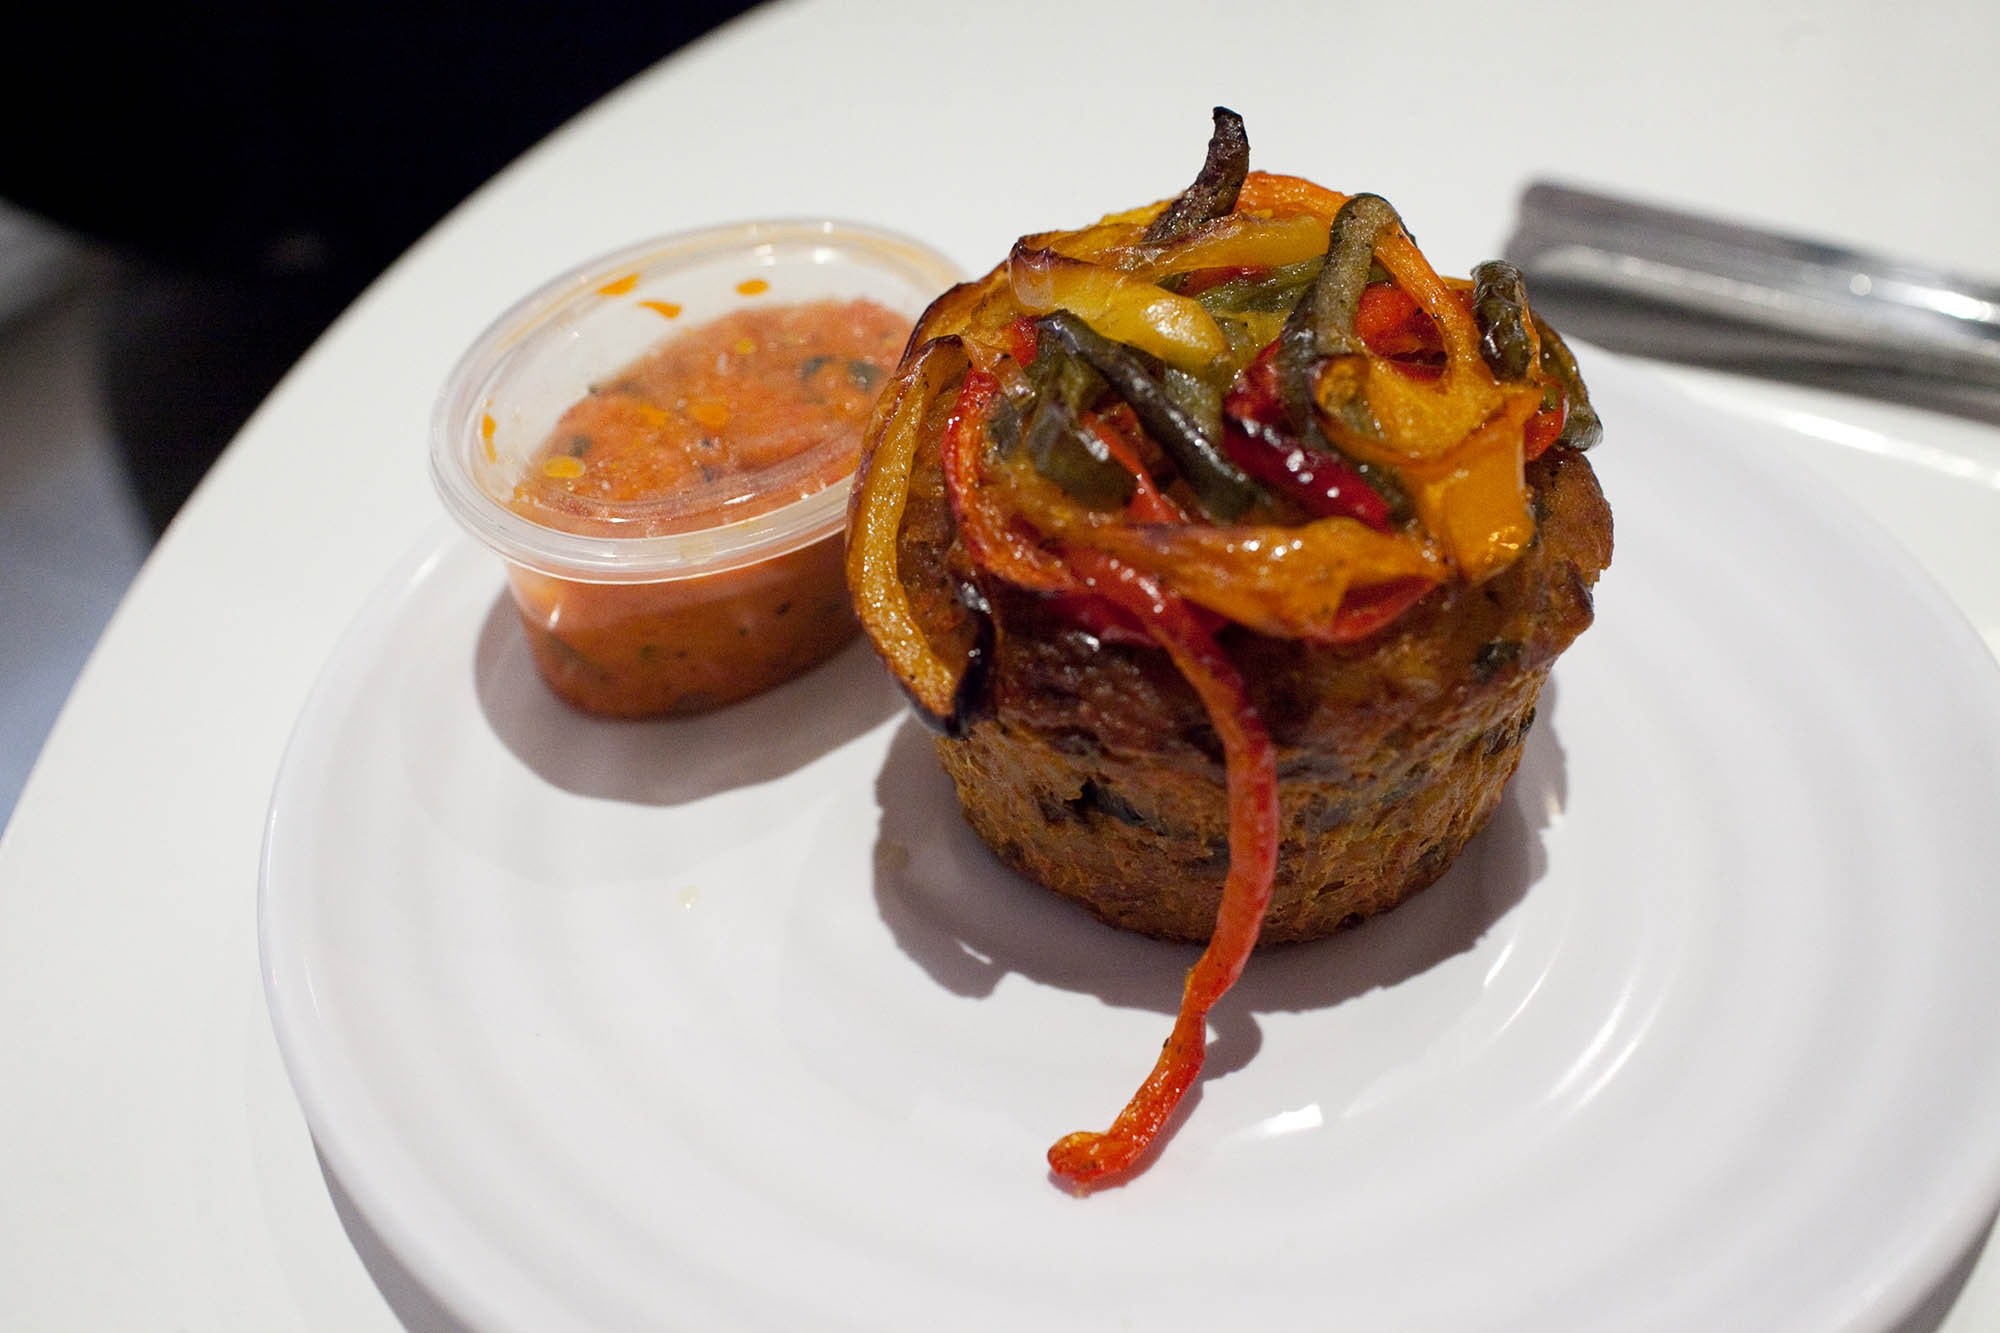 The Meatloaf Bakery in Chicago - Yentl Lentl Meatloaf Cupcake - lentils, brown rice, vegetables, and cheese topped with bell peppers and served with roasted red bell pepper coulis